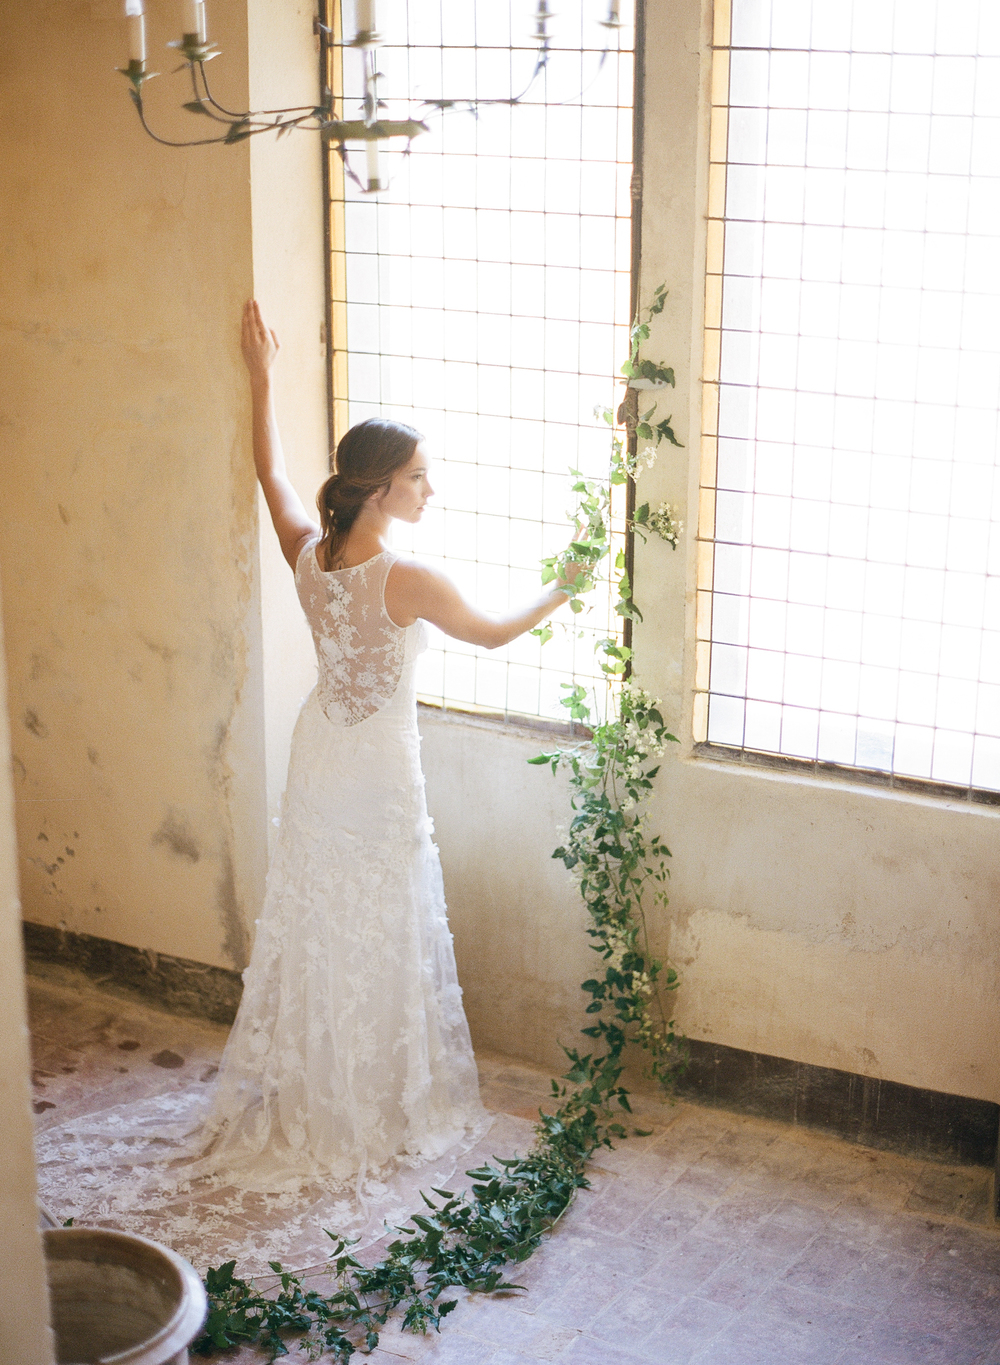 A trailing vine decorates the window where the bride stands, dressed in an elegant lace Claire Pettibone gown; photo by Sylvie Gil